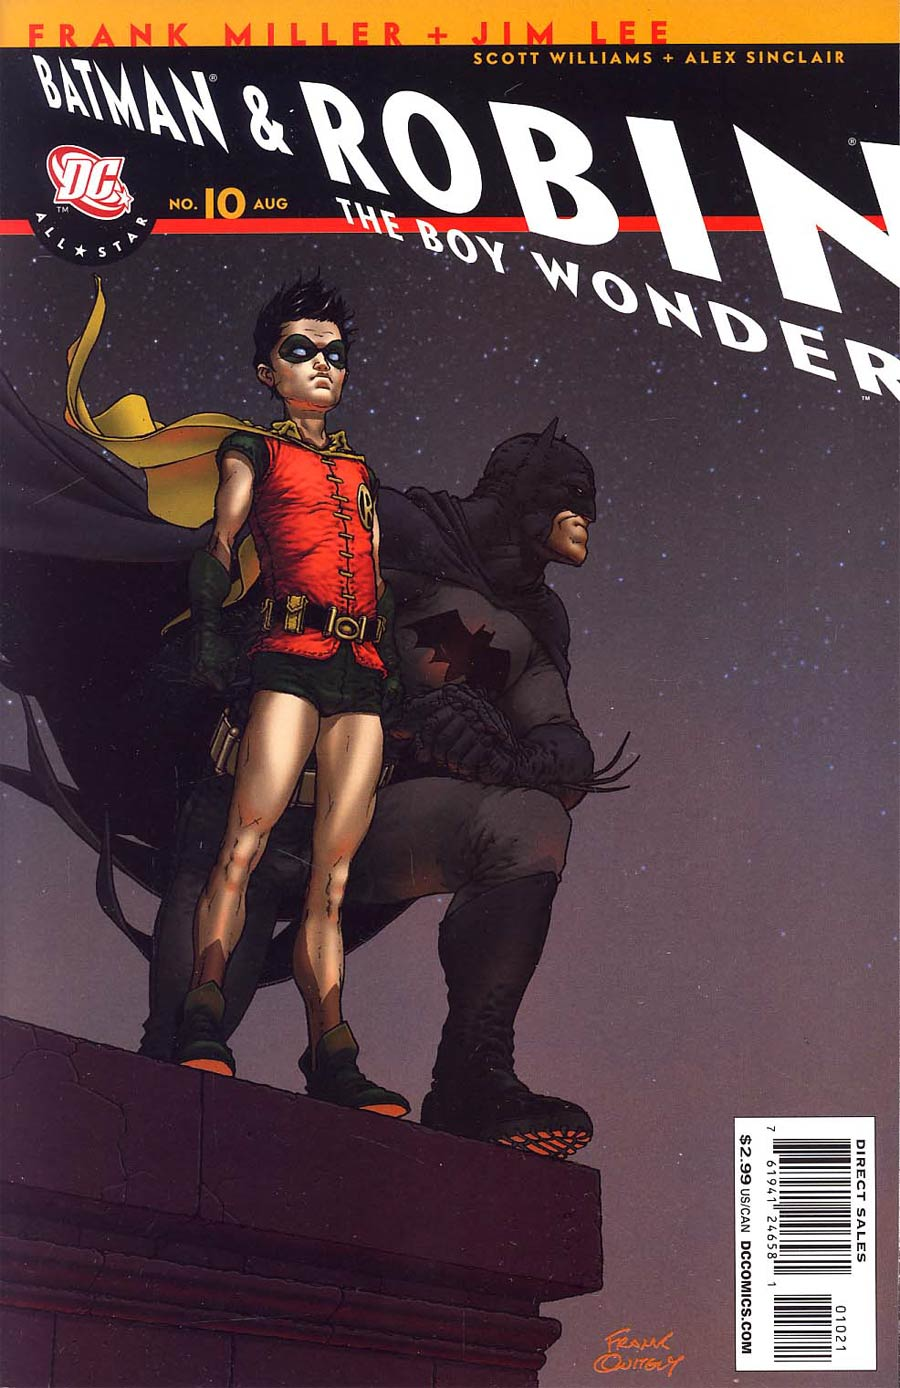 All Star Batman And Robin The Boy Wonder #10 Incentive Frank Quitely Variant Recall edition